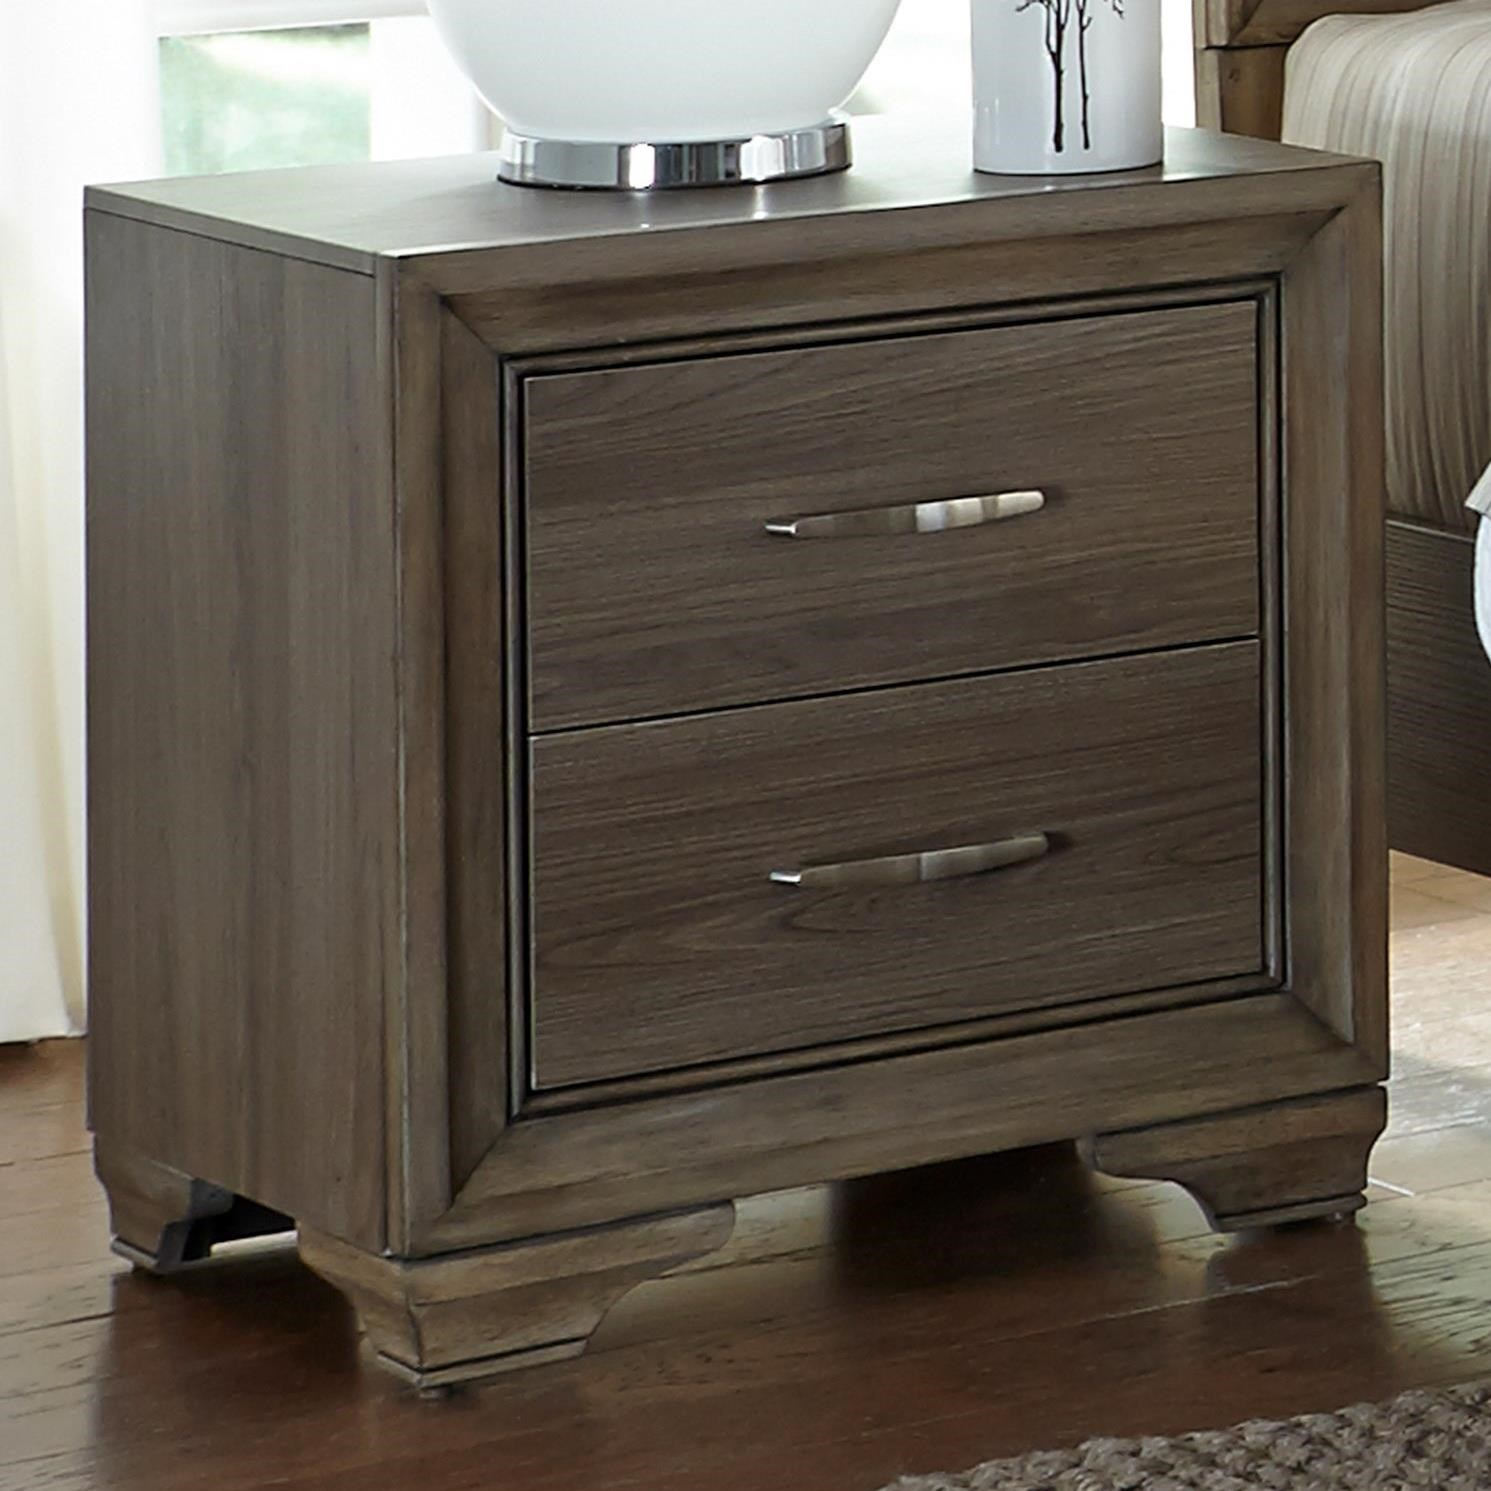 Liberty furniture hartly nightstand with two dovetail for Furniture options